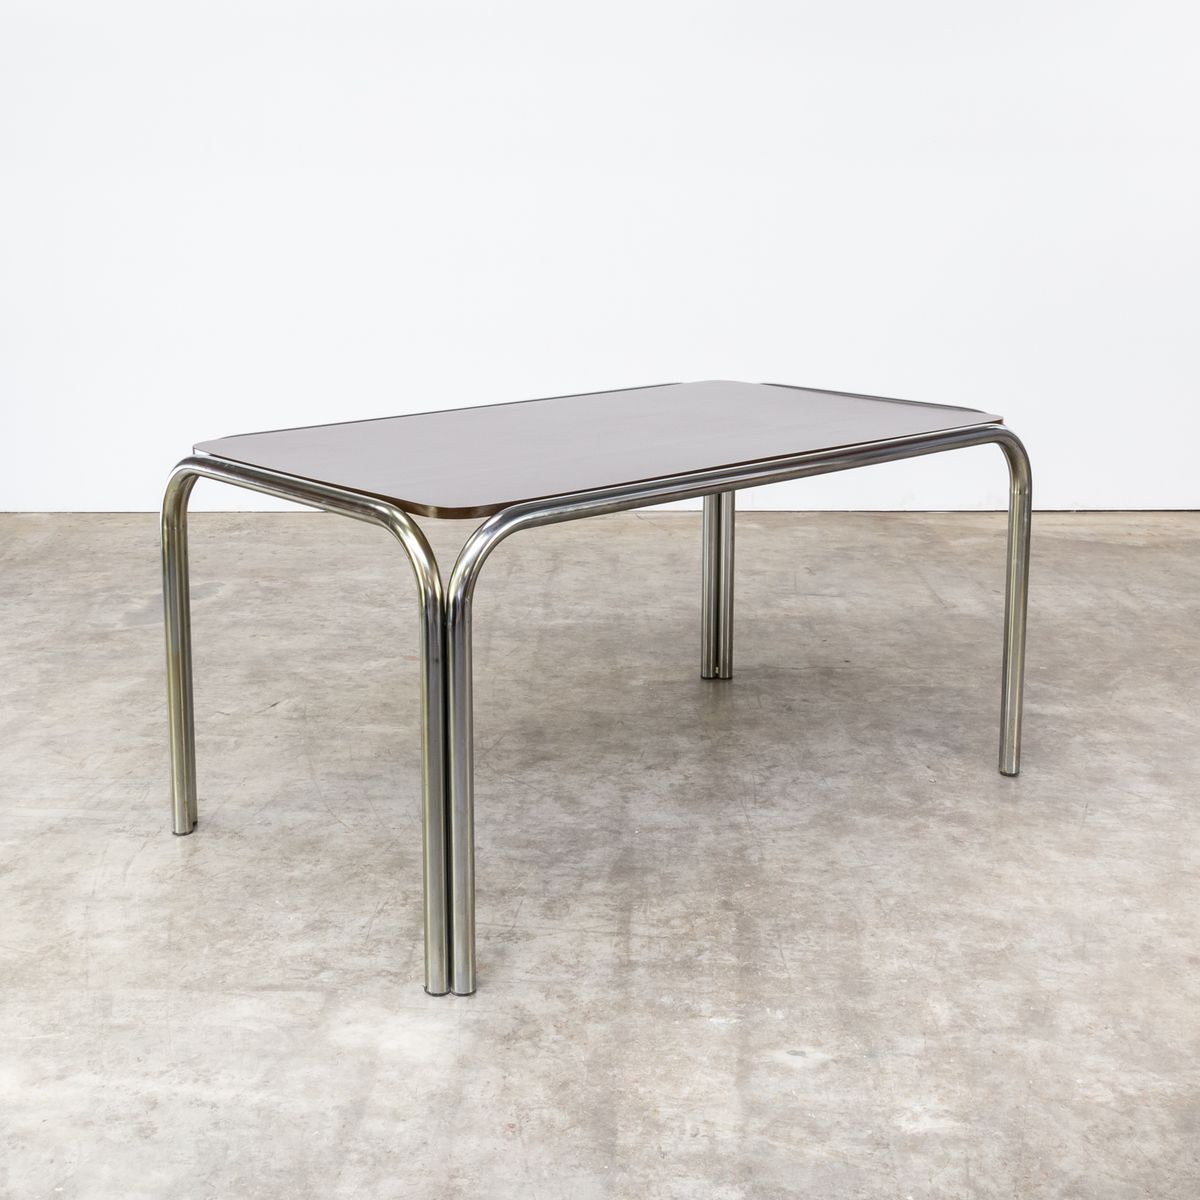 Dining table with tubular metal frame 1970s for sale at for Dining table frame